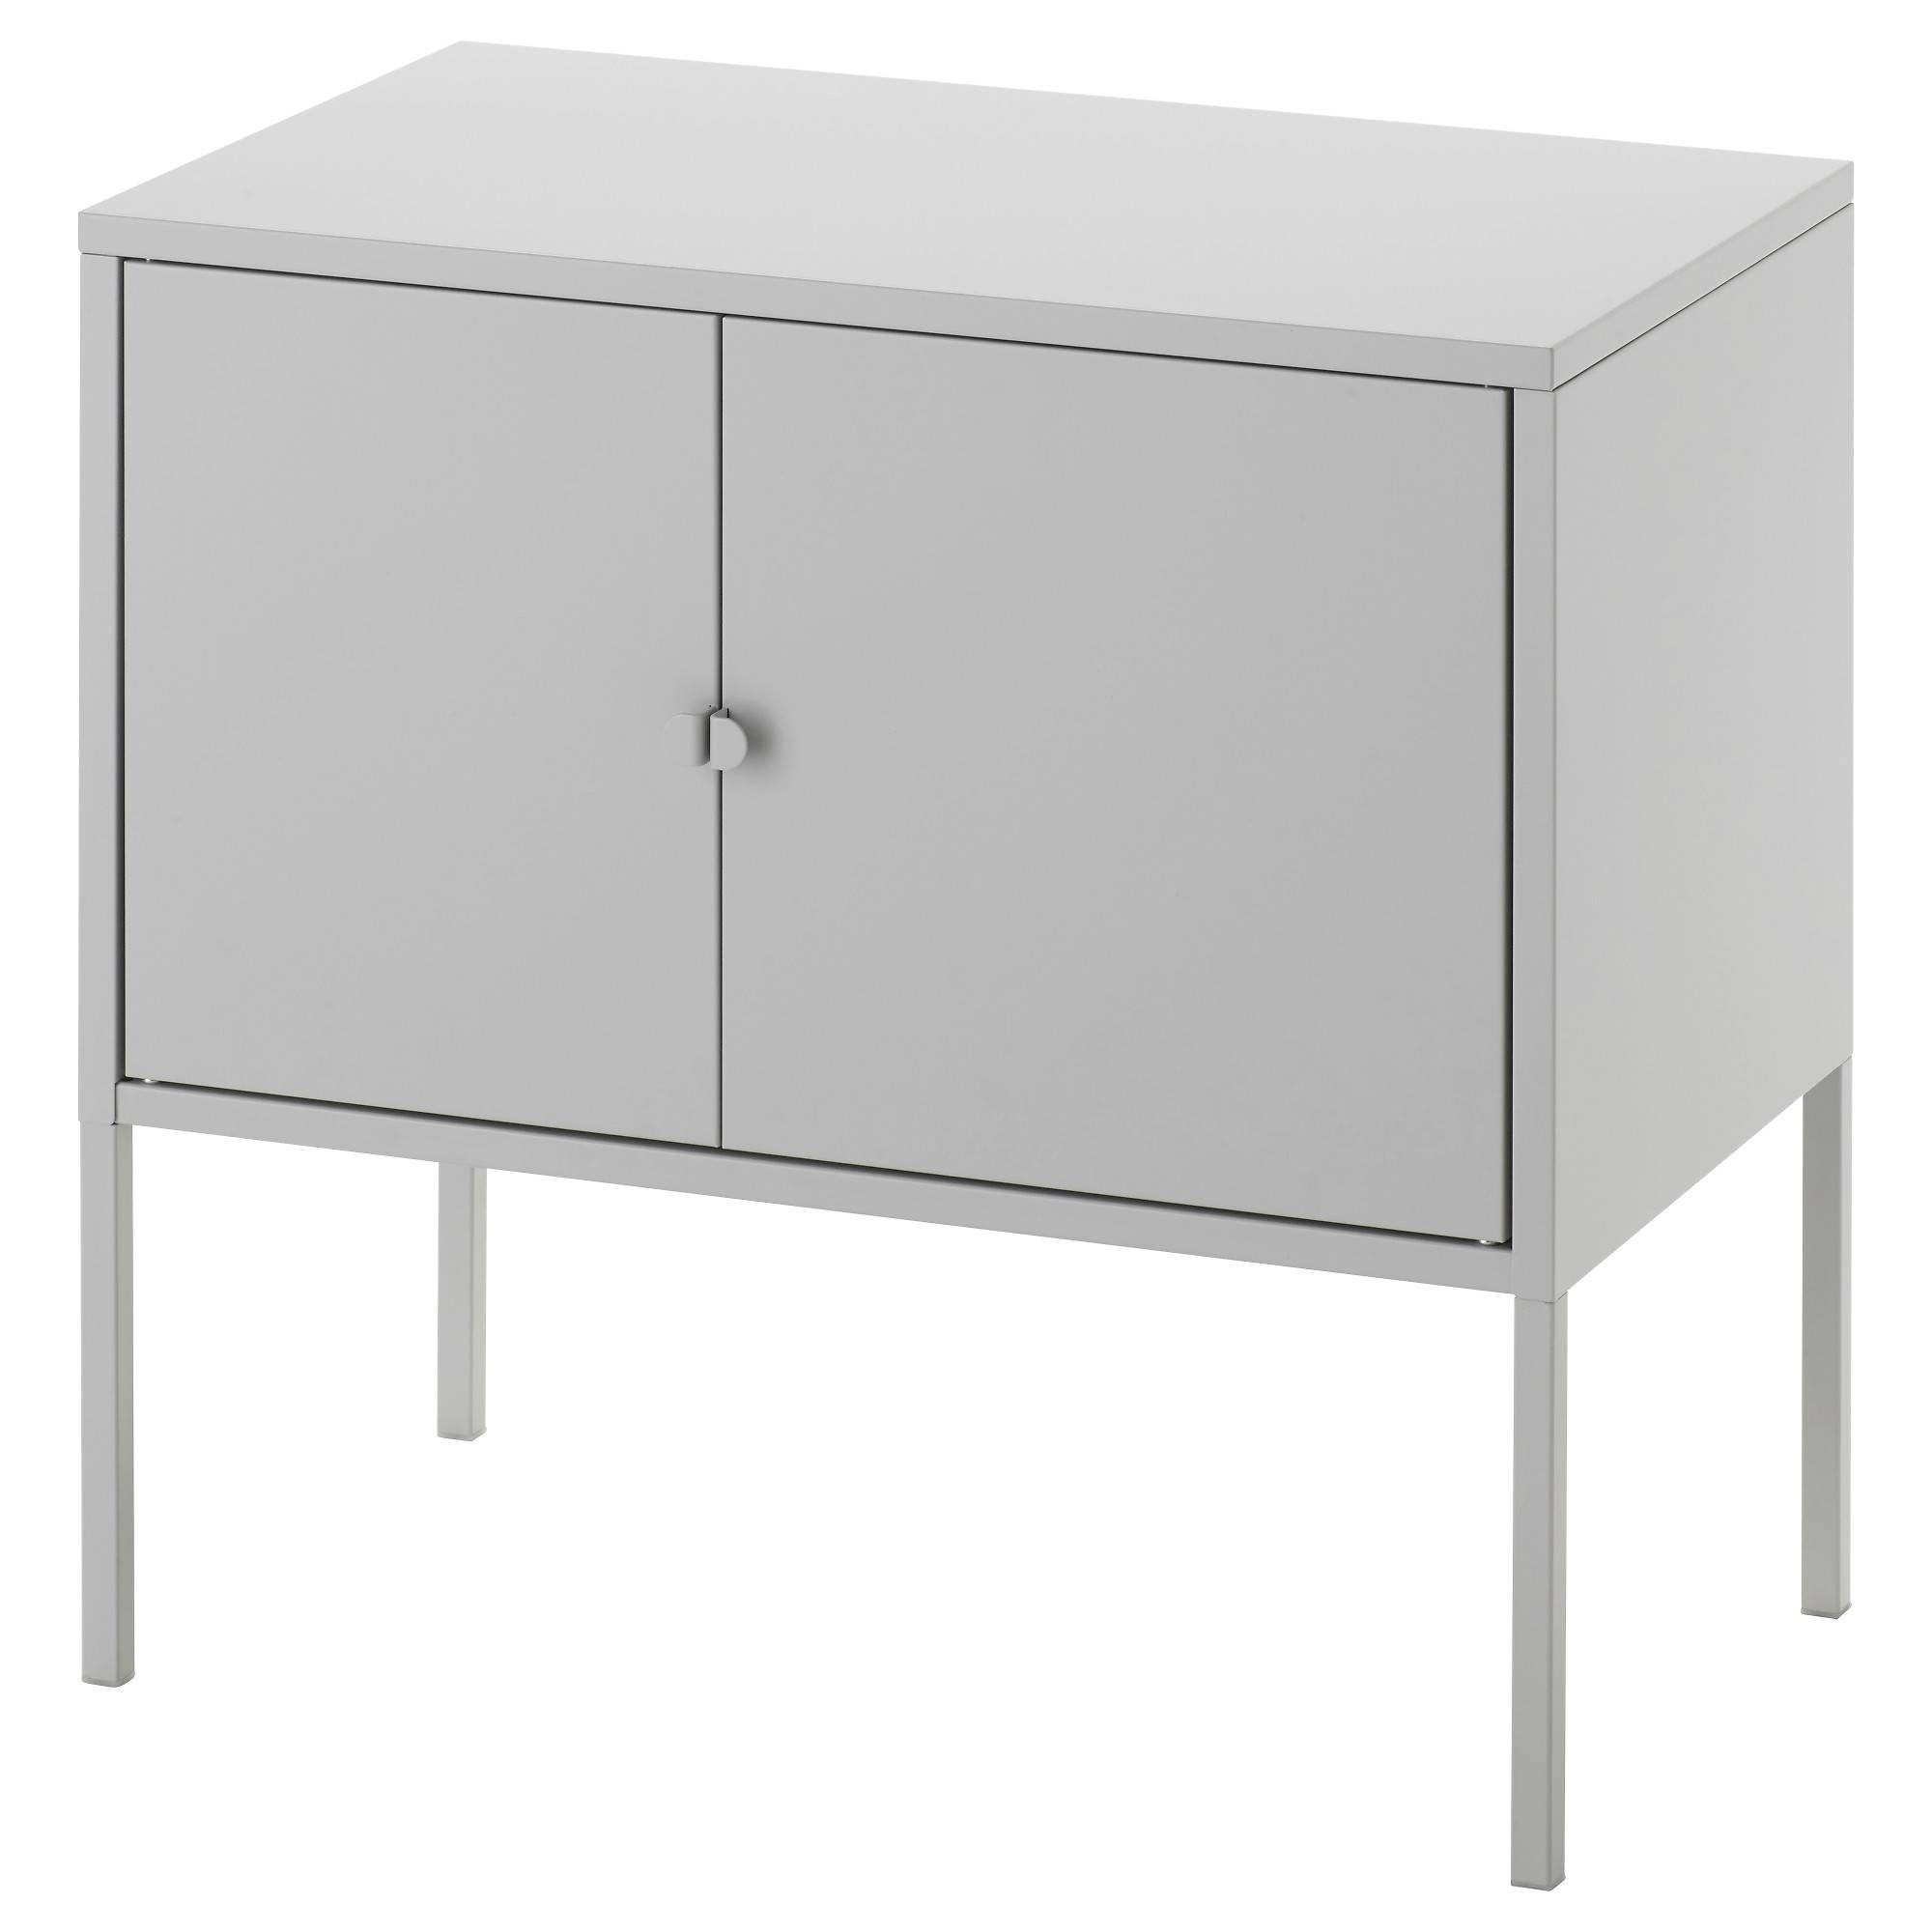 Best collection of inch deep sideboard